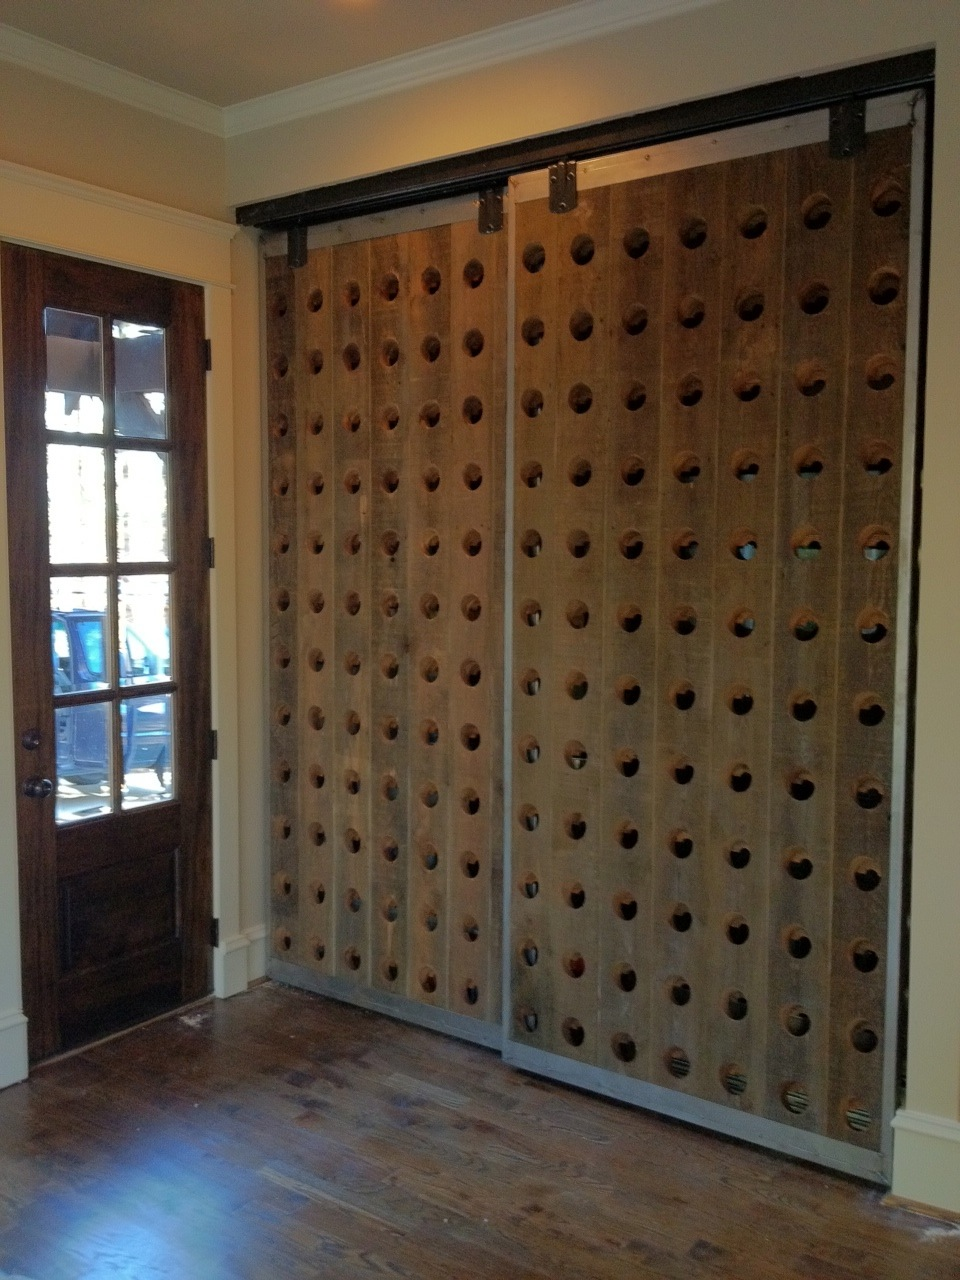 This Old Wood Riddling Wine Rack Door If You Can Dream